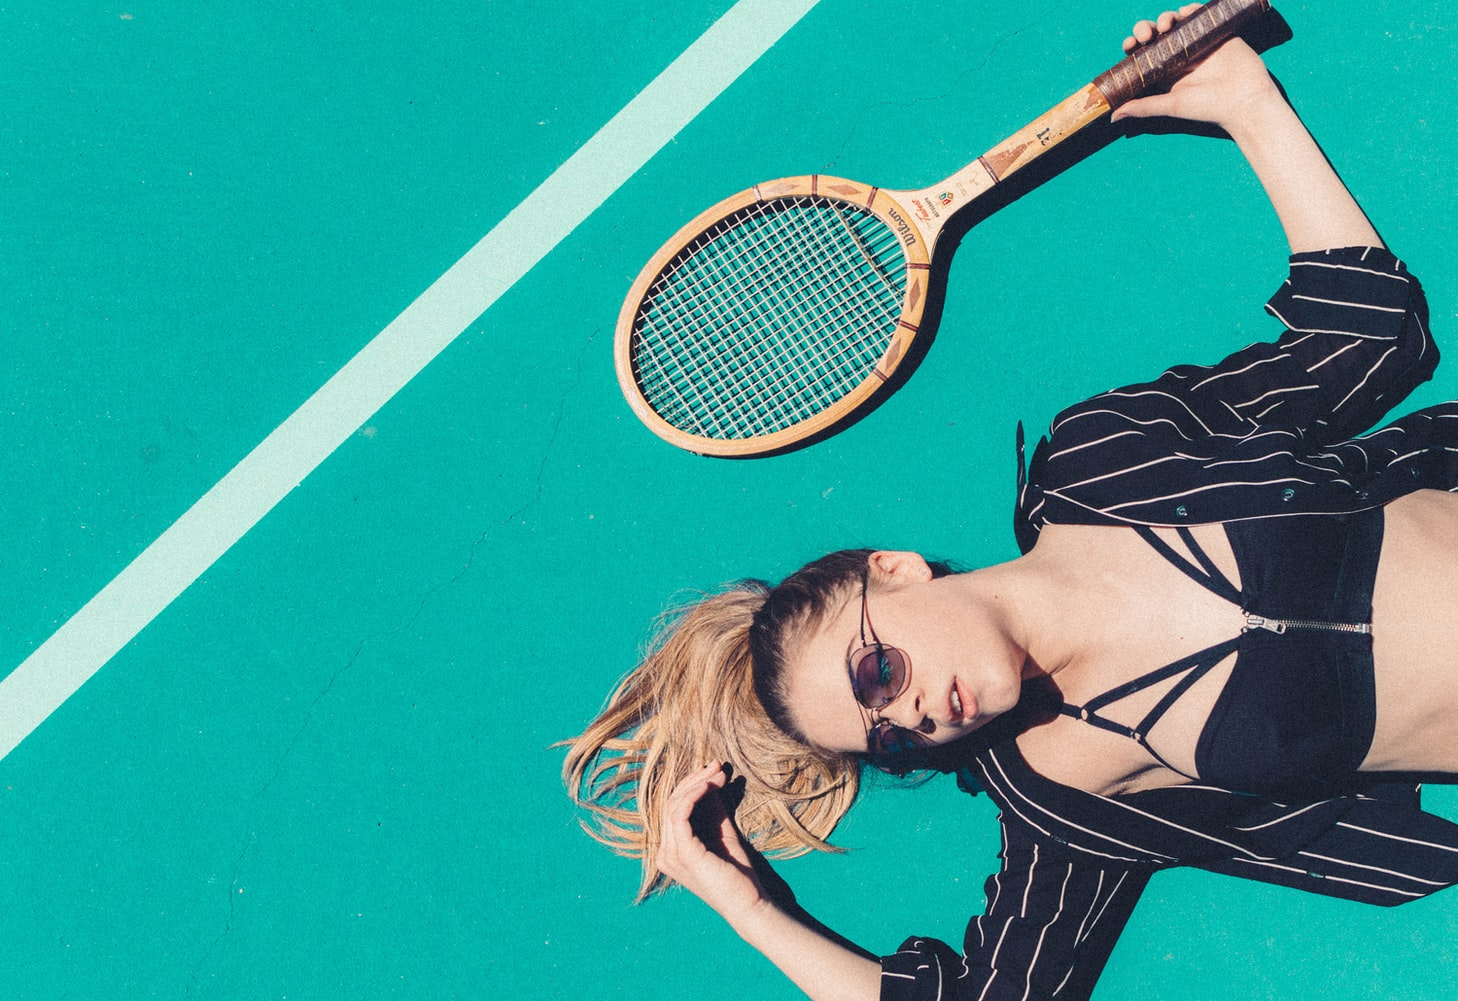 Woman lying on the tennis field is wearing a tennis rocket and wearing the best sunglasses for tennis